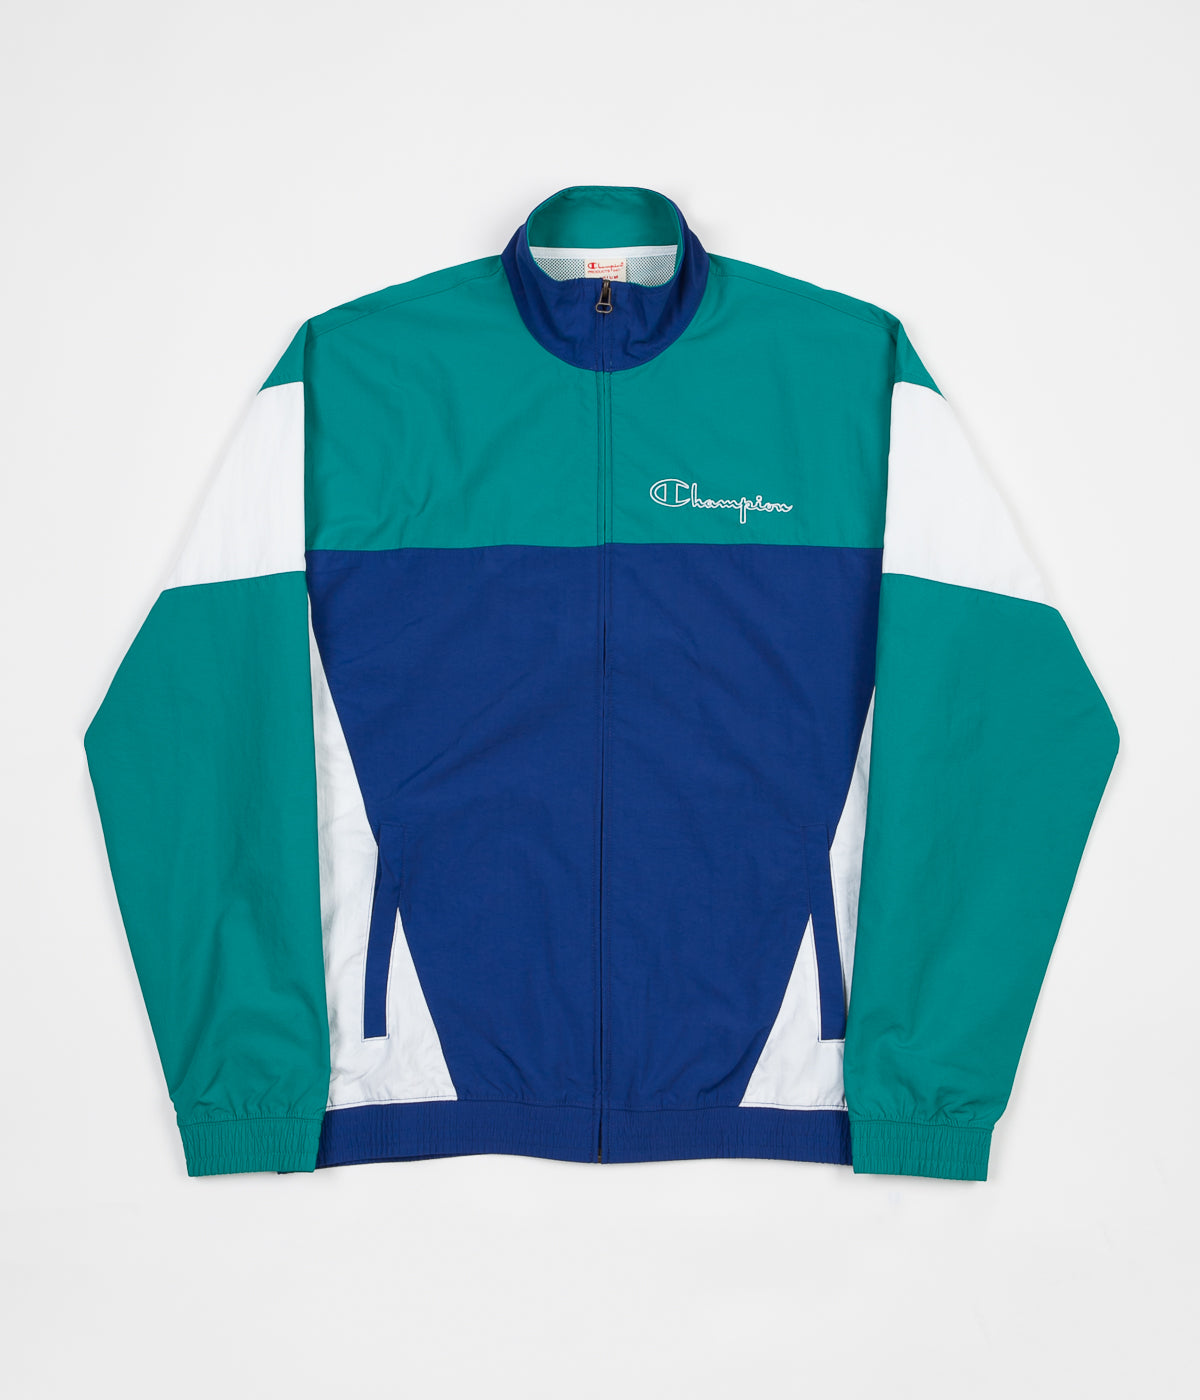 Champion Full Zip Tracksuit Jacket - Blue / Green / White